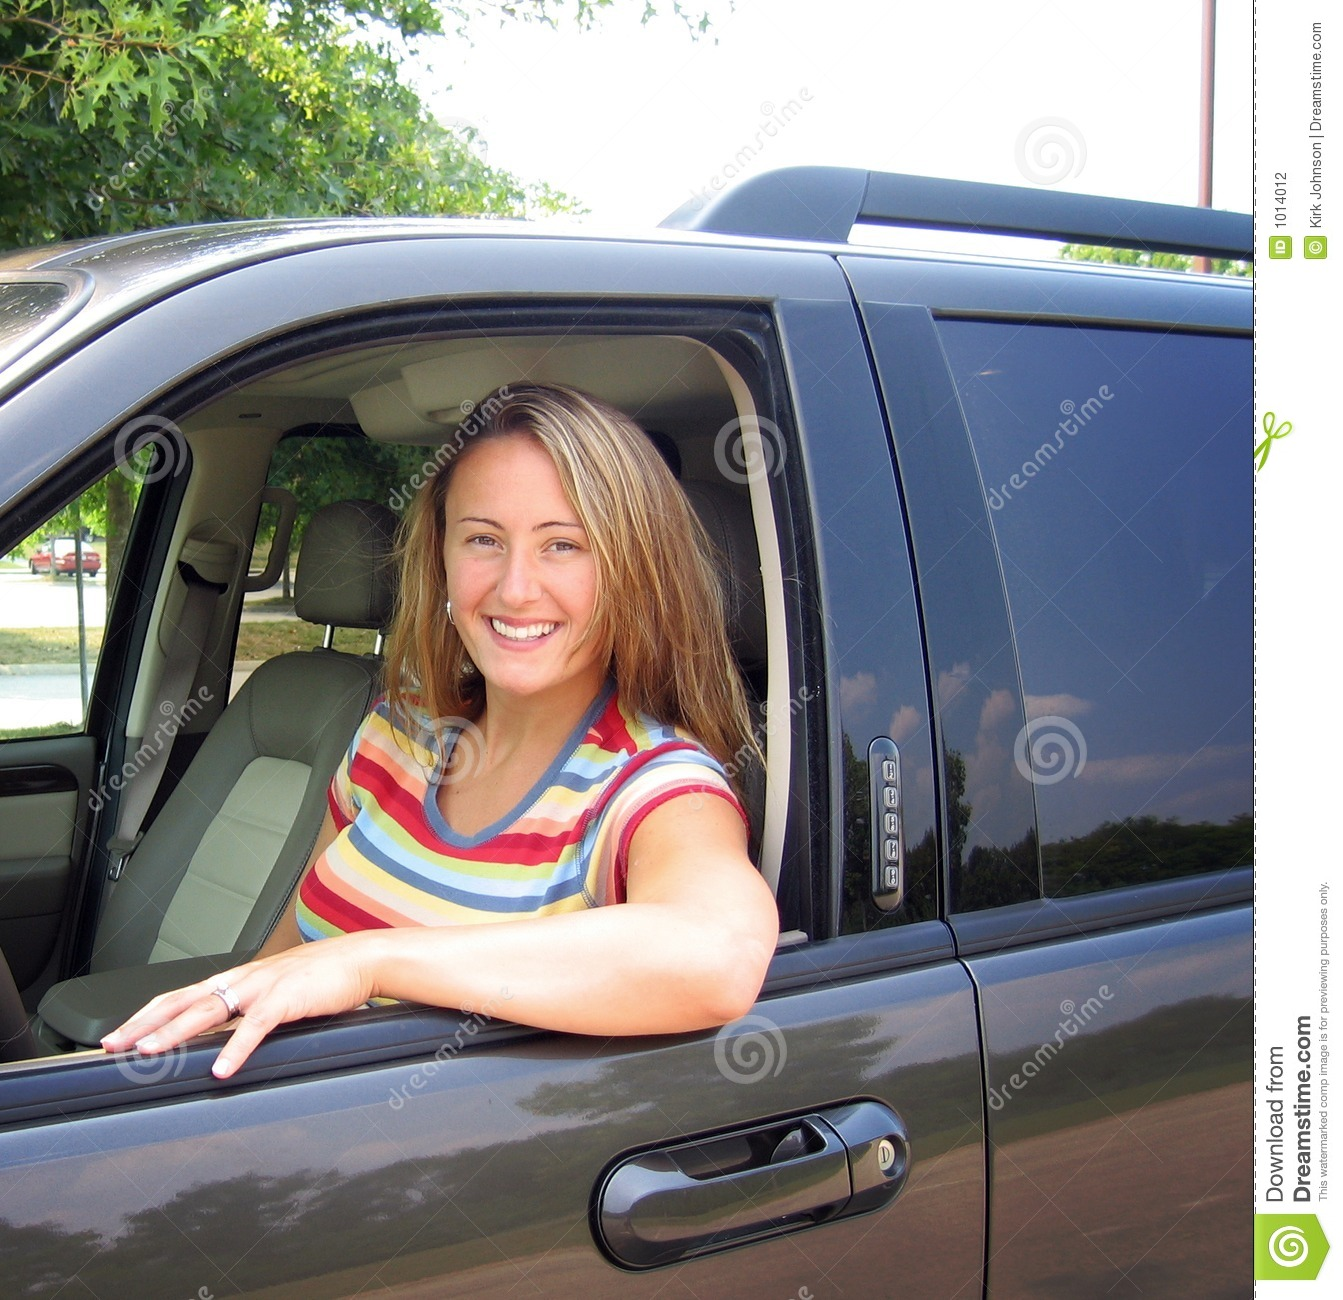 Woman And Car Stock Photography Image 1014012